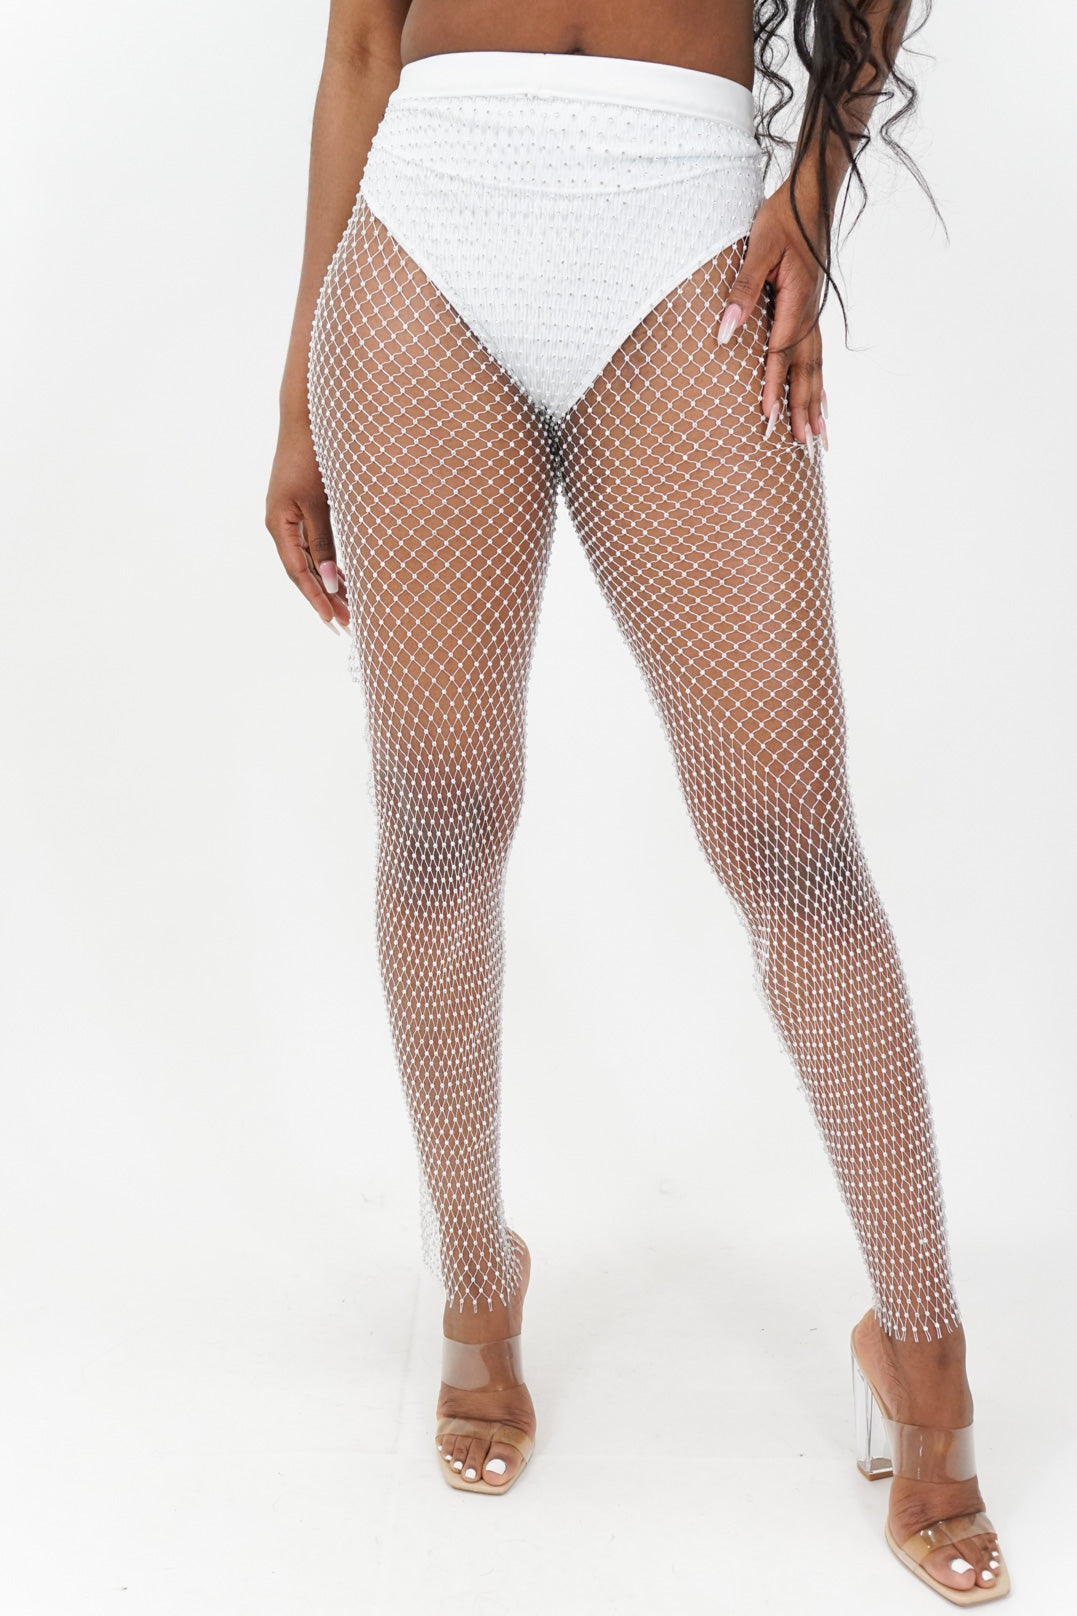 All That Glitters Rhinestone Fishnet Leggings